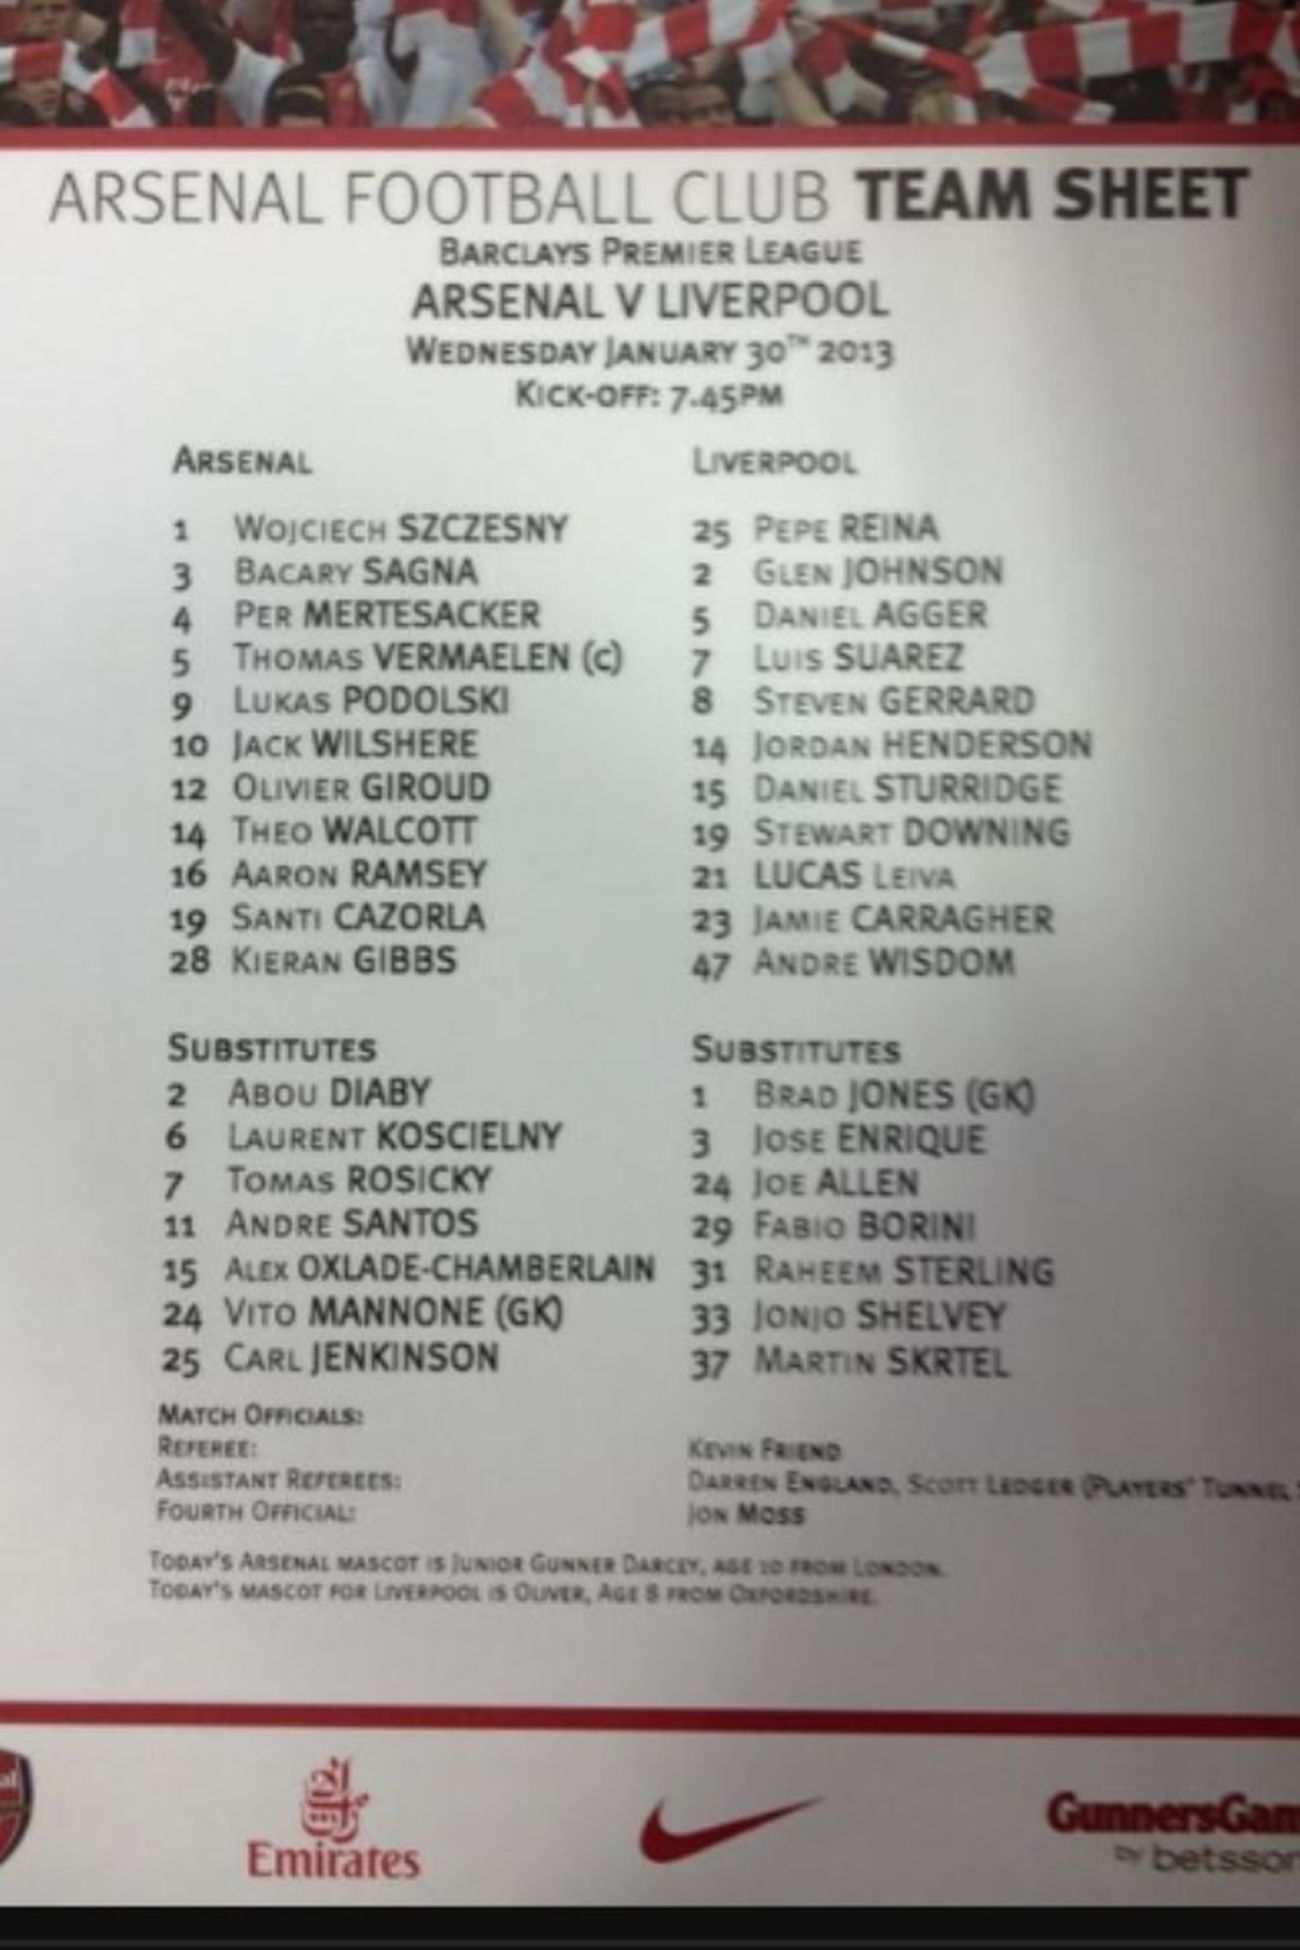 Arsenal Vs Liverpool Team Sheet